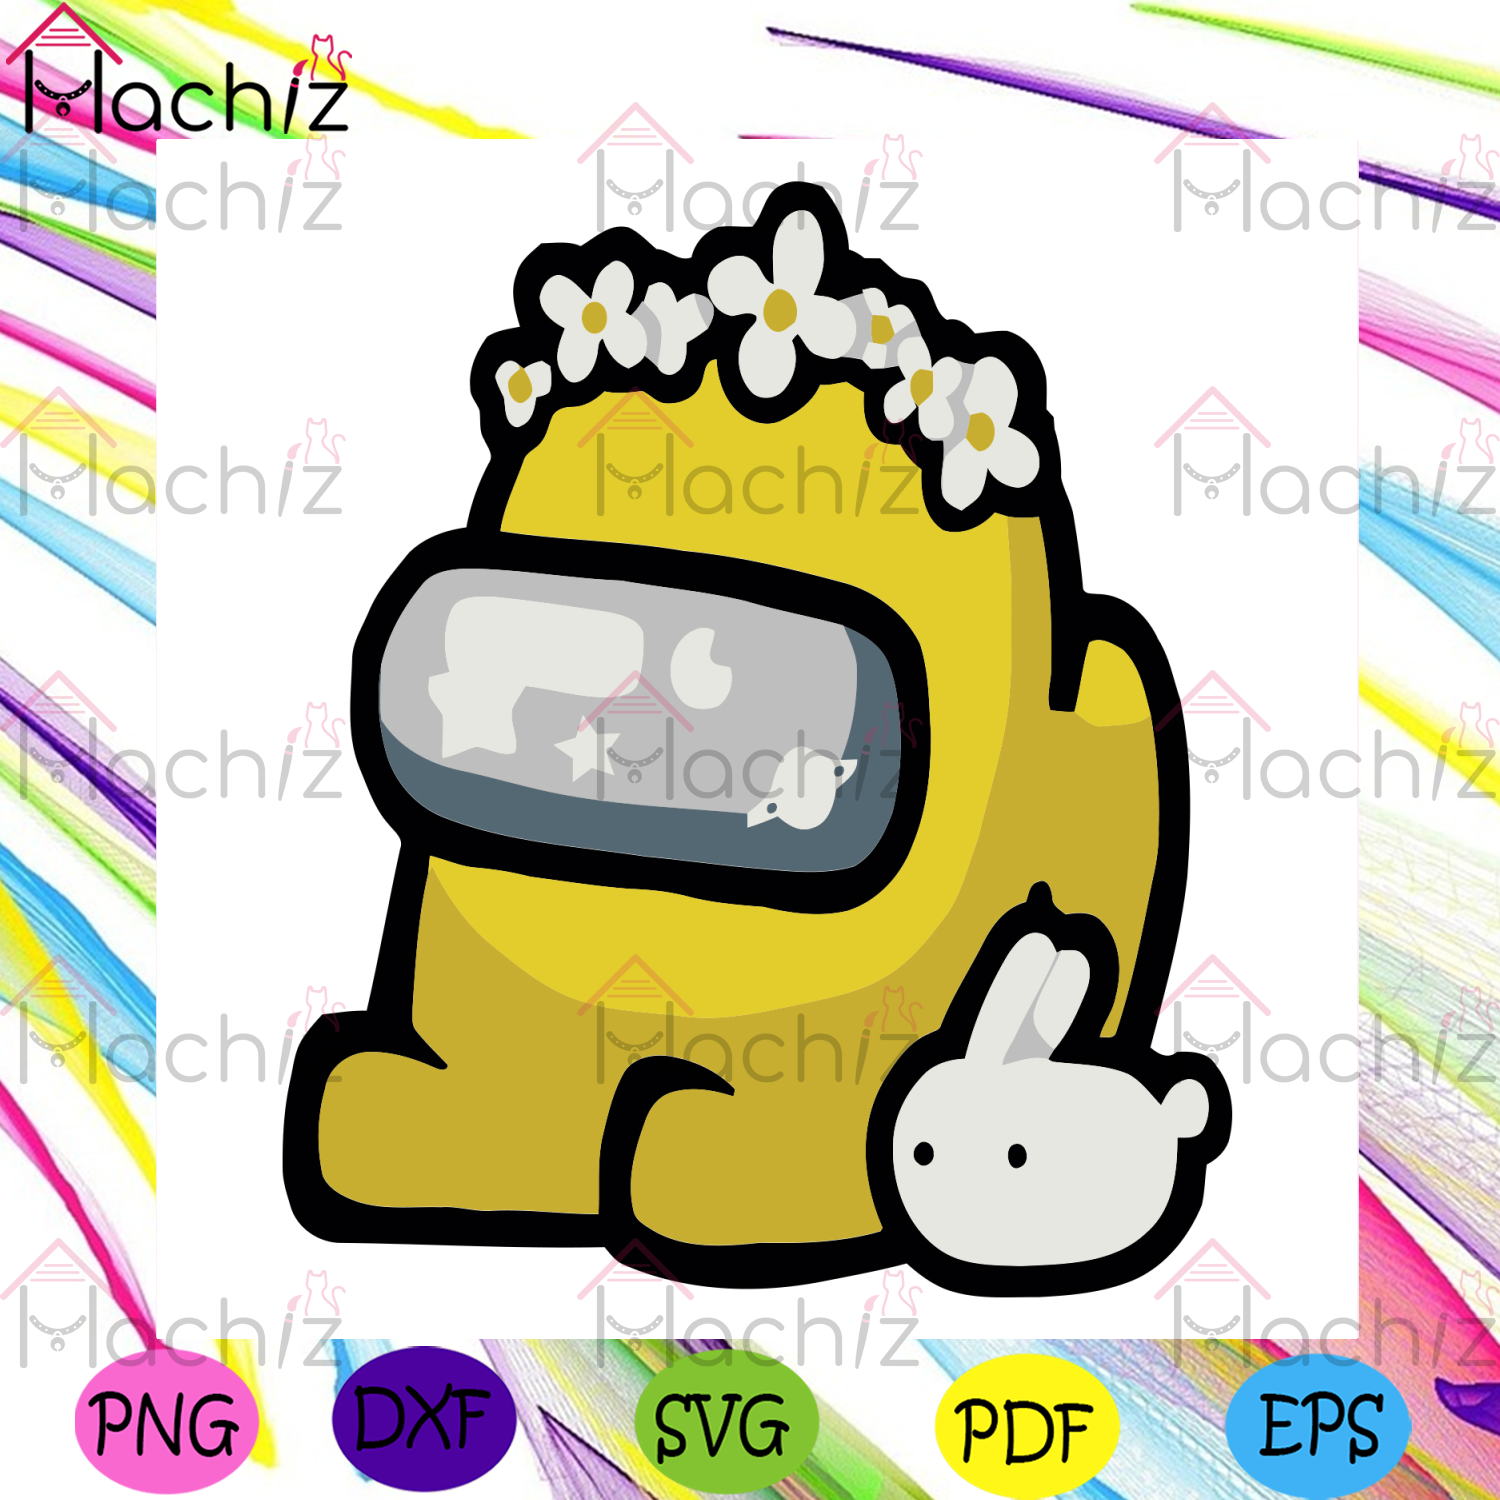 Yellow Impostor Svg, Trending Svg, Among Us Svg, Impostor Svg, Crewmate Svg, Flowers Svg, Bunny Svg, Cute Impostor Svg, Among Us Characters Svg, Among Us Lovers, Among Us Gifts Svg, Game Svg, Gaming Svg